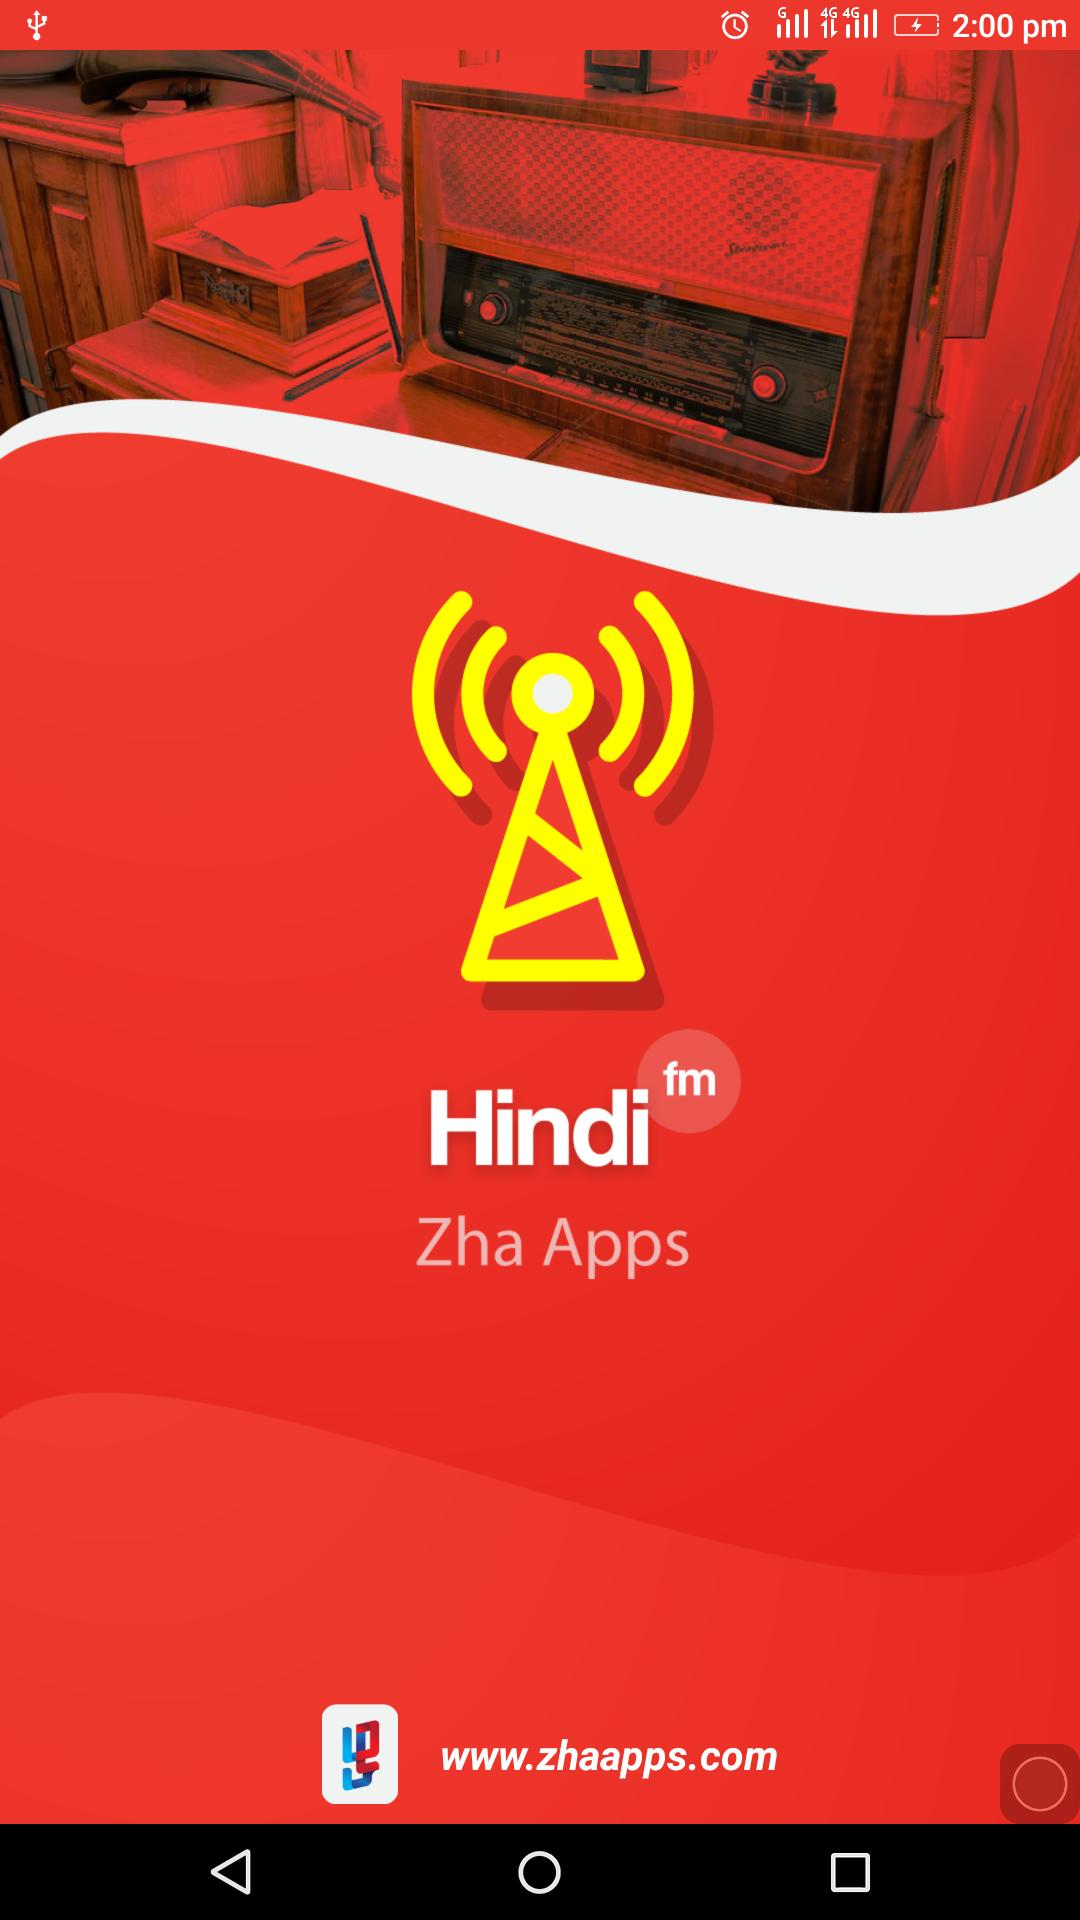 Hindi FM Radio Live Online for Android - APK Download